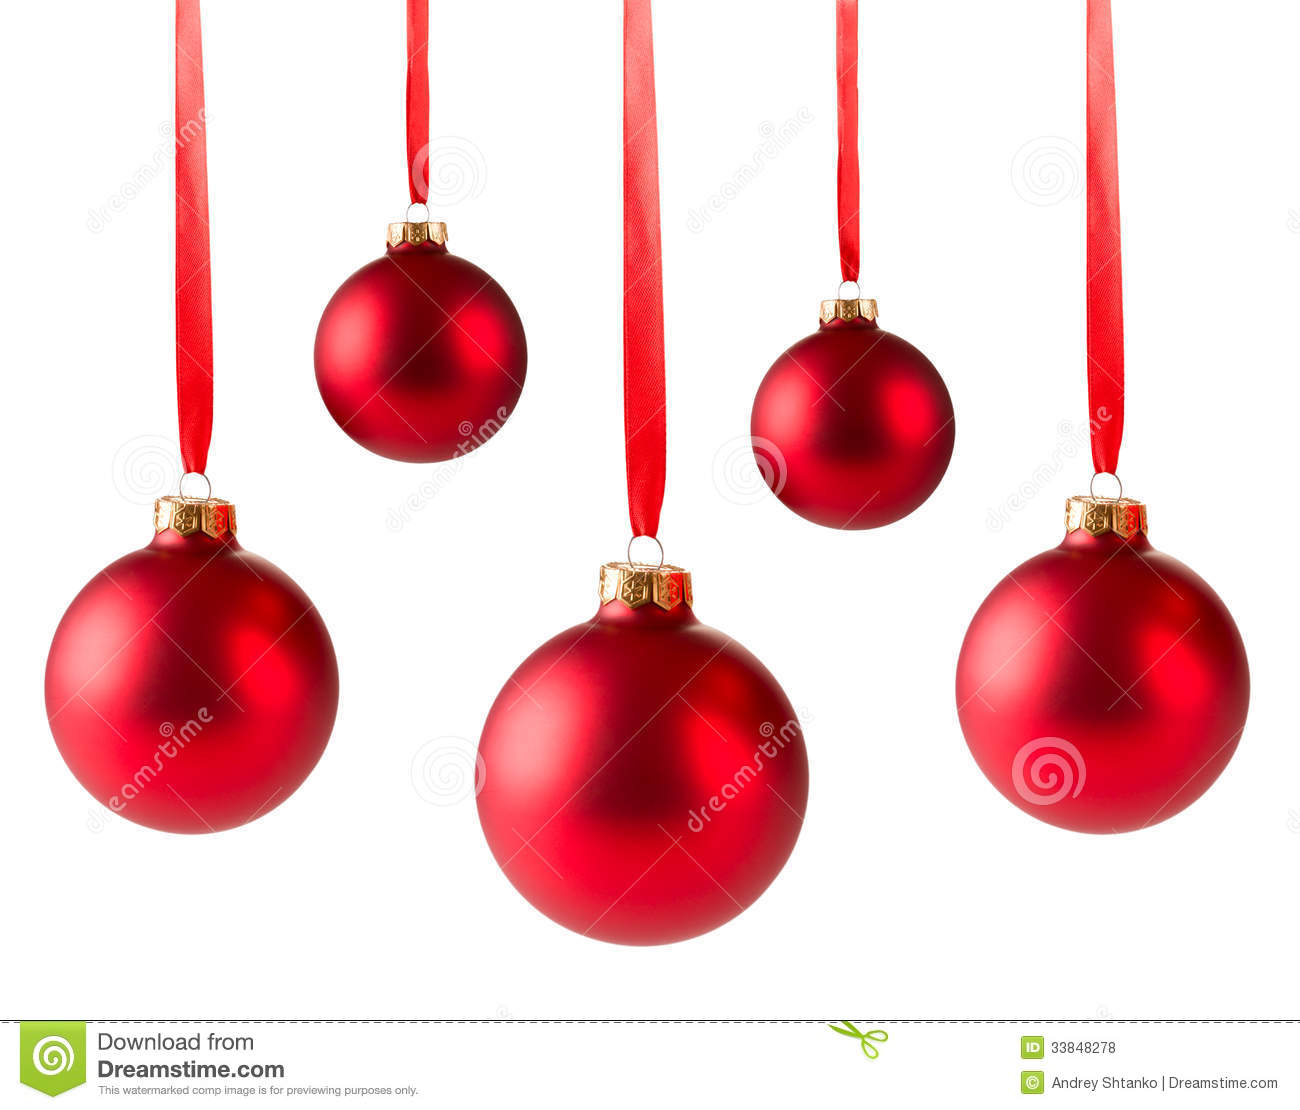 five red christmas balls hanging stock photo image 33848278. Black Bedroom Furniture Sets. Home Design Ideas